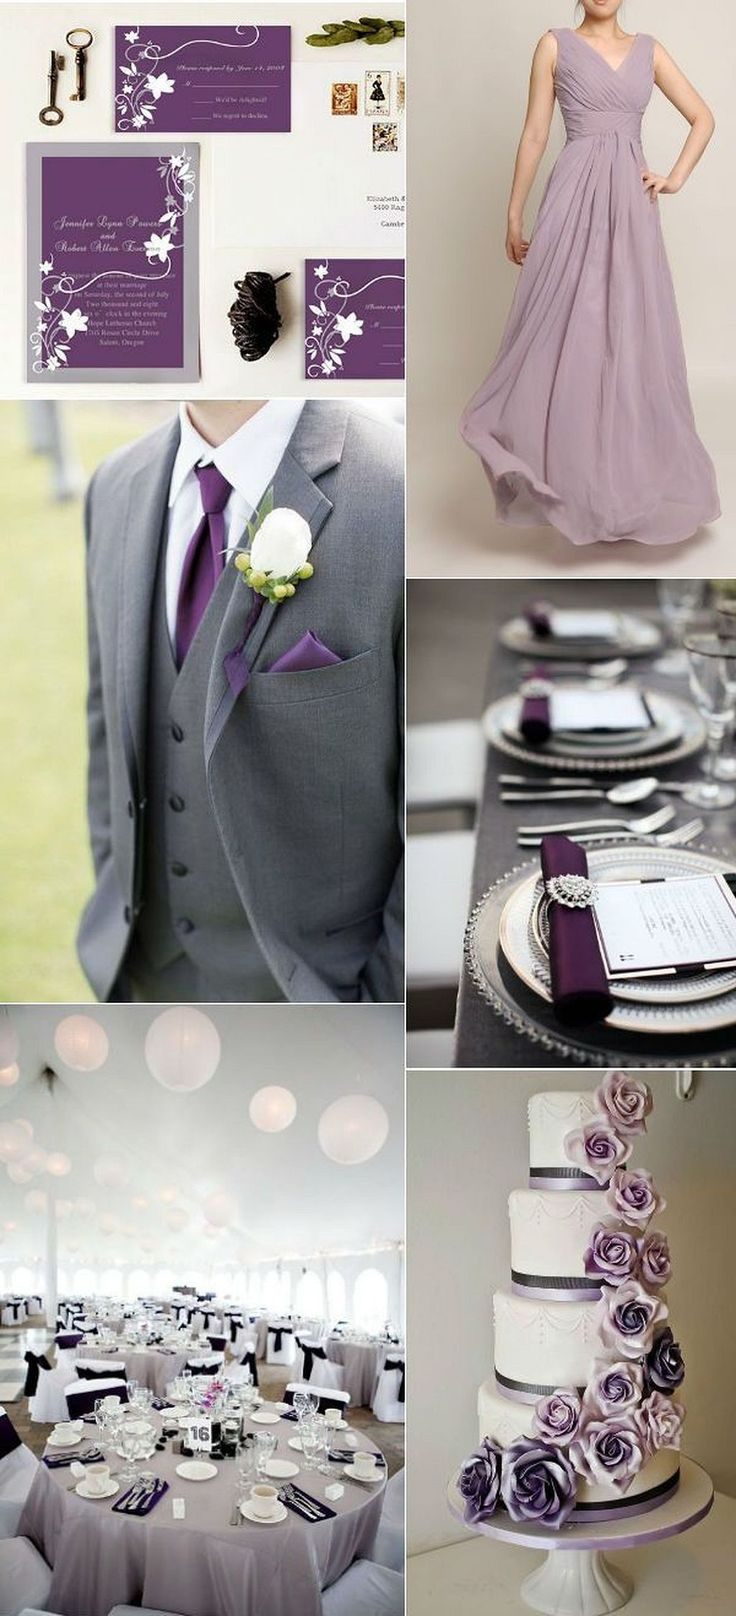 Cool 68 Plum Purple and Grey Elegant Wedding Color Ideas https://weddmagz.com/68-plum-purple-and-grey-elegant-wedding-color-ideas/